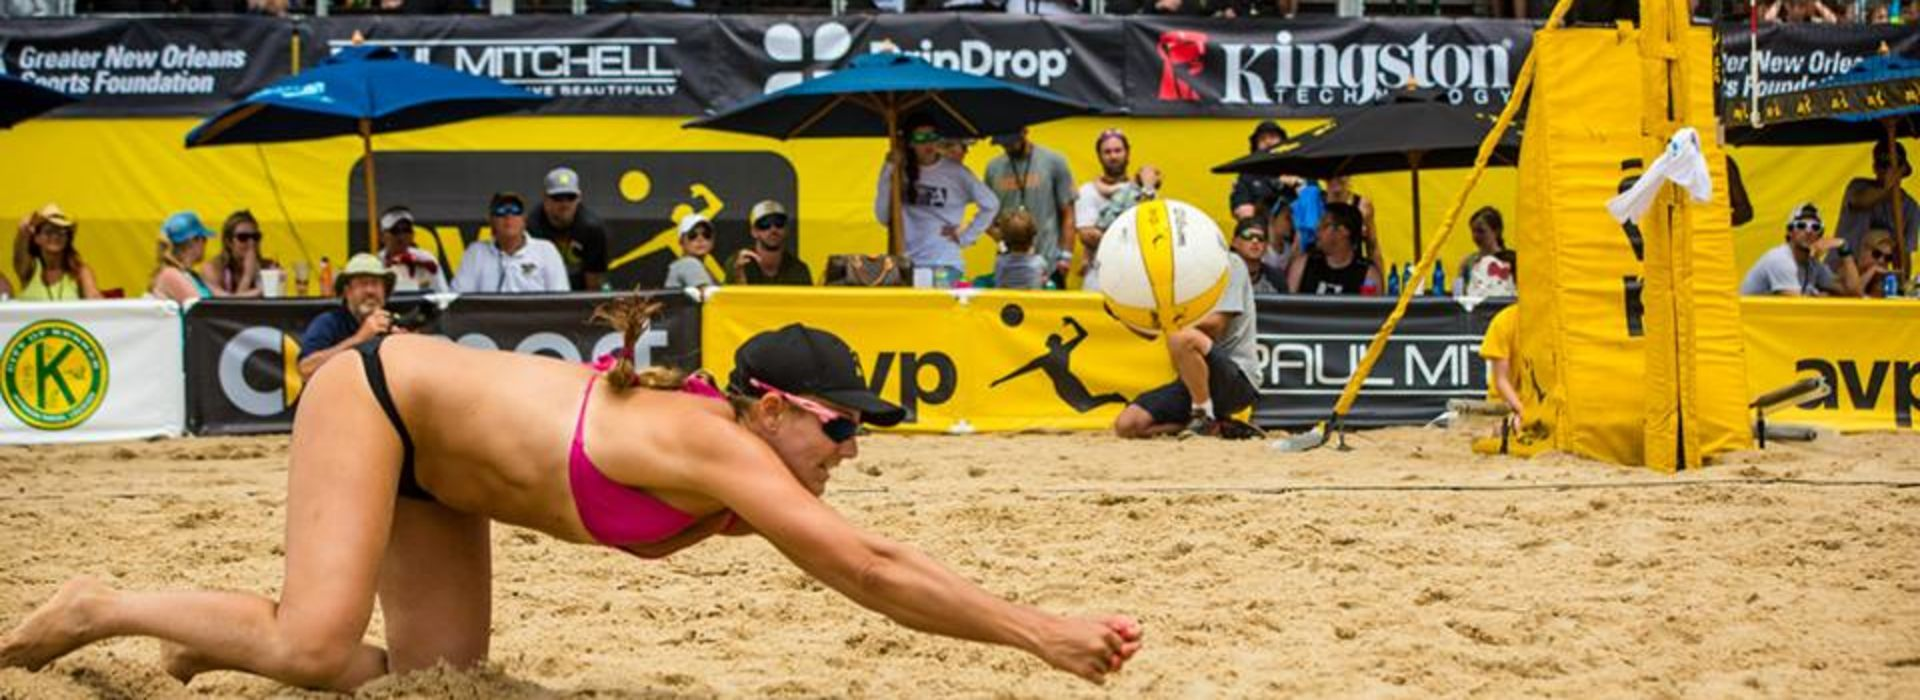 AVP National Championship